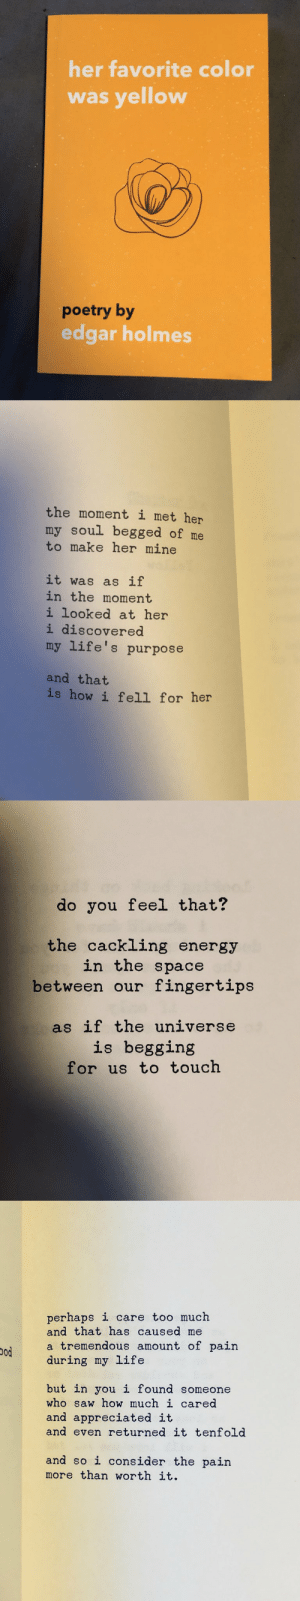 RT @TheLifeDiaries: Her favorite color ?????❤? https://t.co/Fmr4z9rCnp: her favorite color  was yellow  poetry by  edgar holmes   the moment i met her  my soul begged of me  to make her mine  it was as if  in the moment  i looked at her  i discovered  my life's purpose  and that  is how i fell for her   do you feel that?  the cackling energy  in the space  between our fingertips  as if the universe  is begging  for us to touch   perhaps i care too much  and that has caused me  a tremendous amount of pain  during my life  od  but in you i found someone  who saw how much i cared  and appreciated it  and even returned it tenfold  and so i consider the pain  more than worth it. RT @TheLifeDiaries: Her favorite color ?????❤? https://t.co/Fmr4z9rCnp